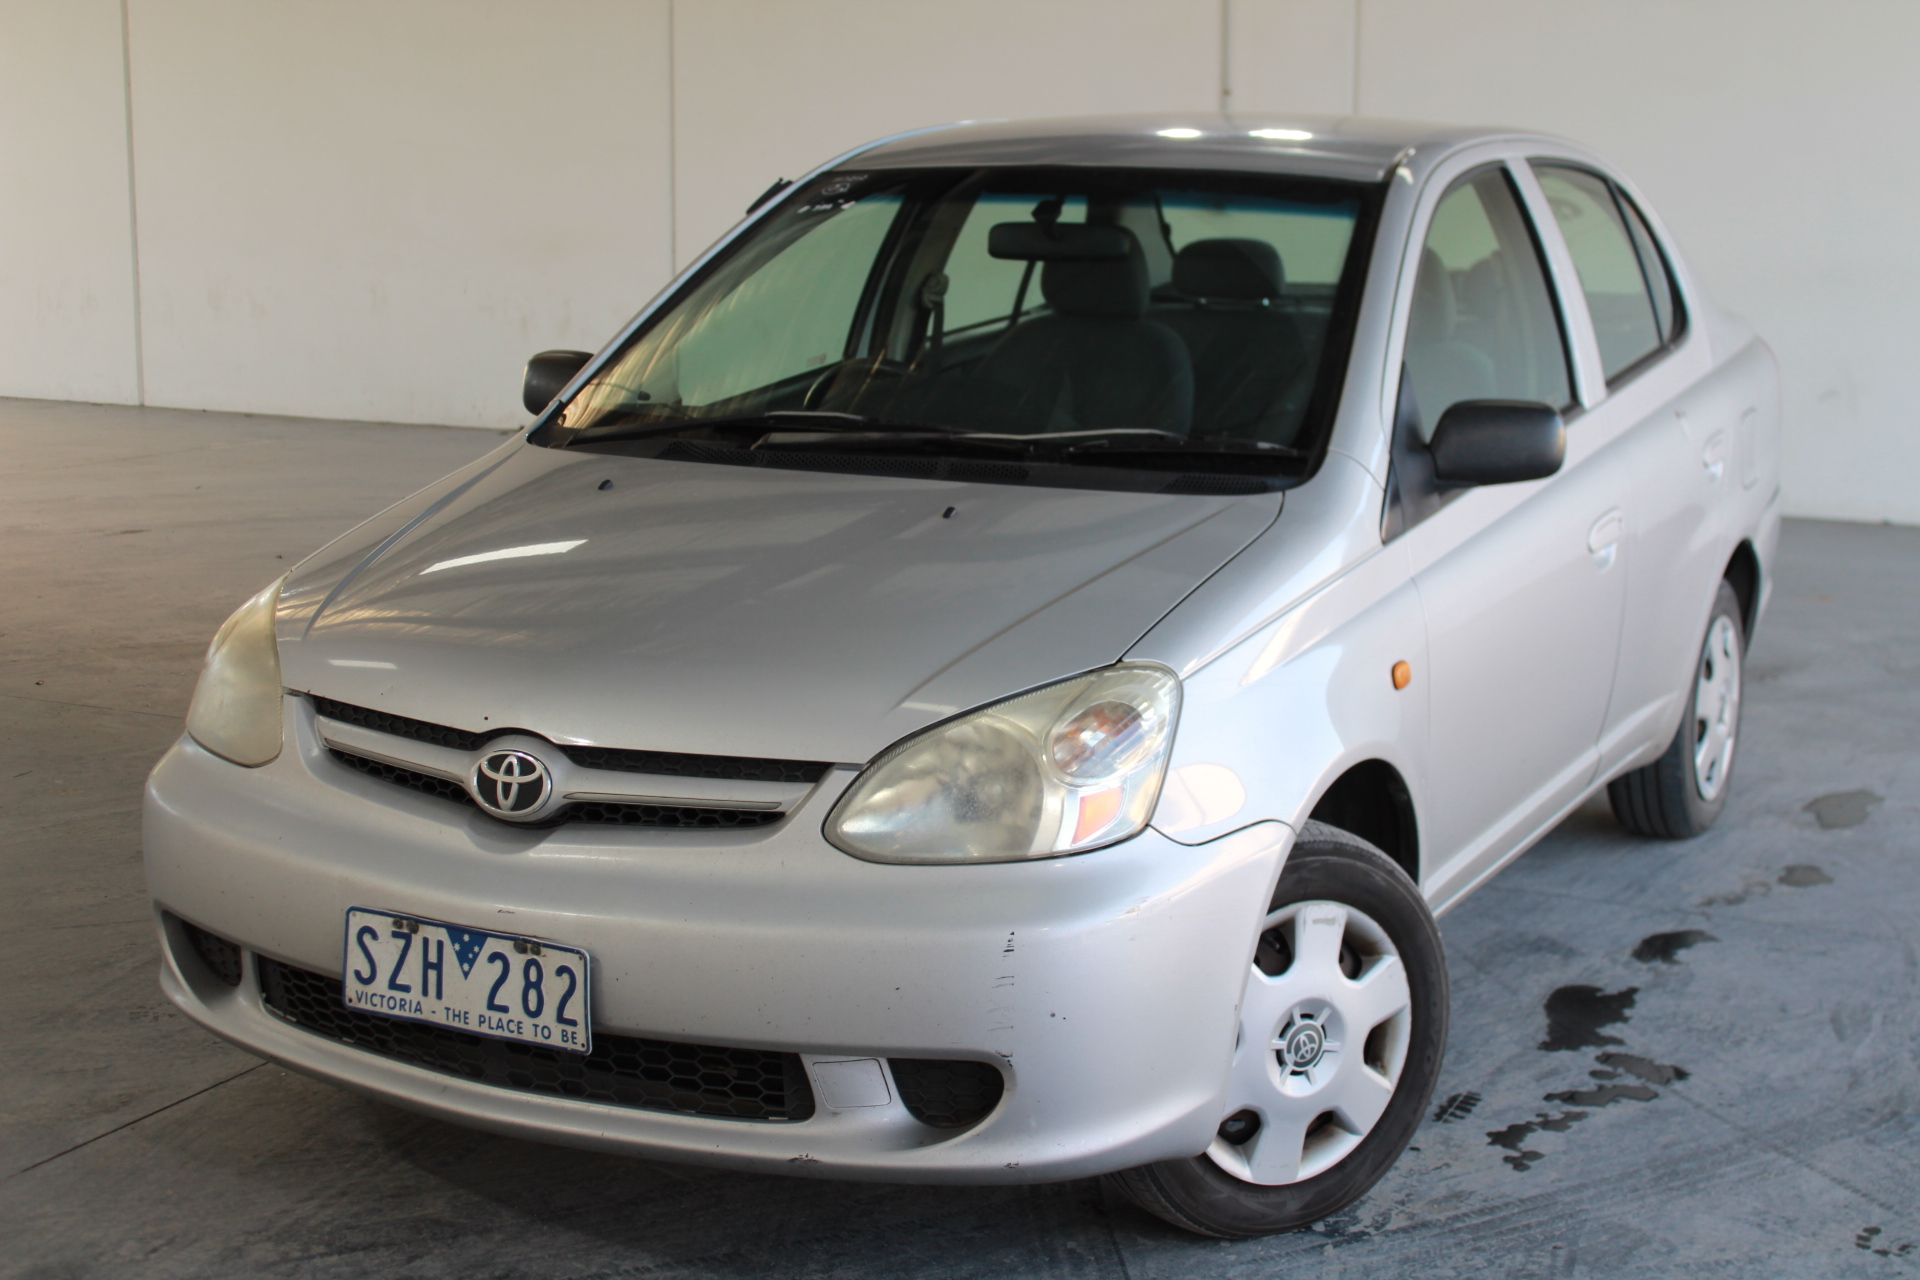 2004 Toyota Echo NCP12R Automatic Sedan